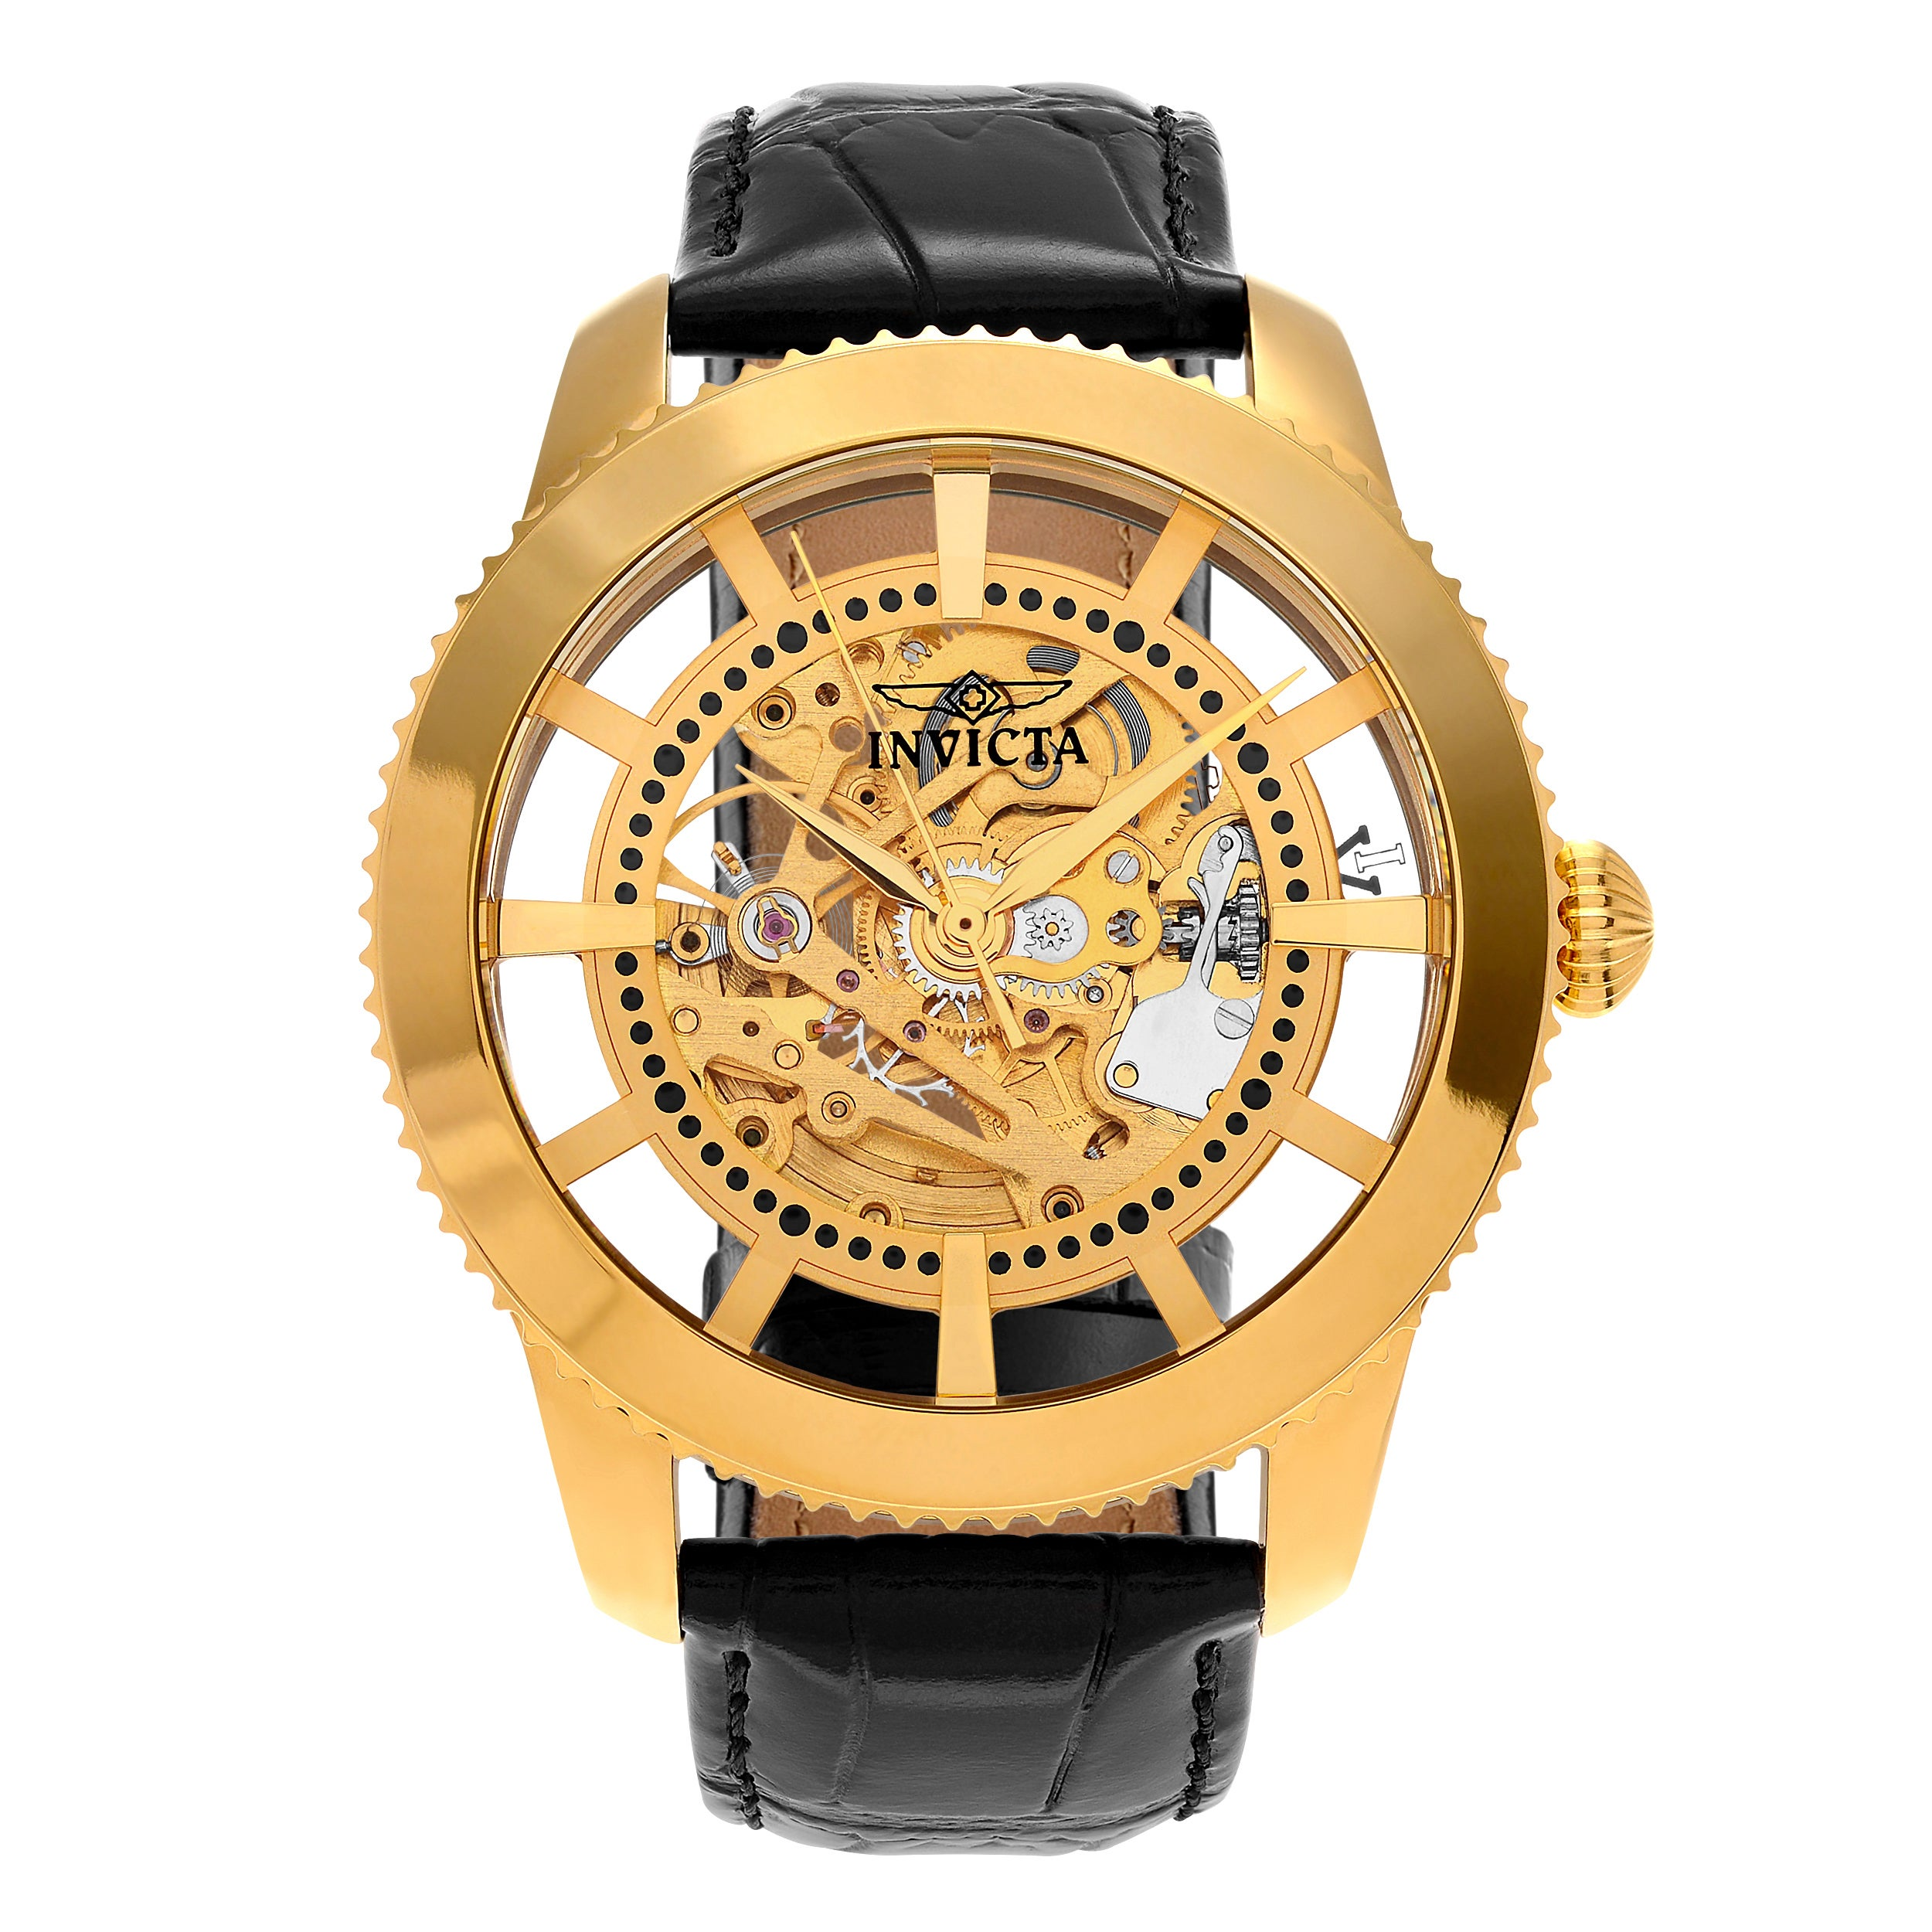 Invicta Men's 22571 'Vintage' Gold Tone Stainless Steel T...